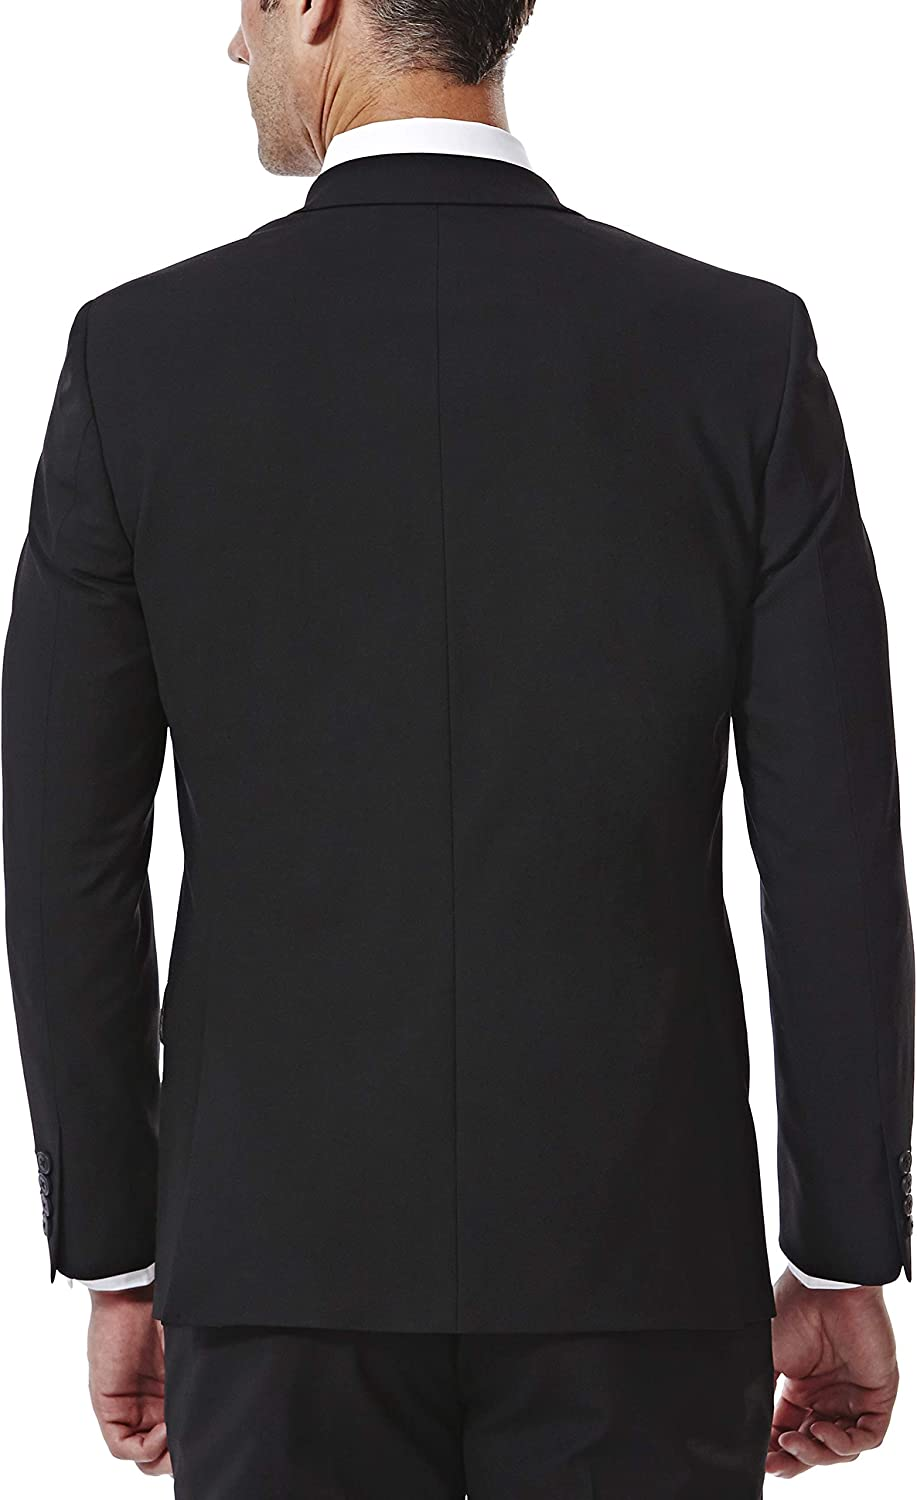 J.M. Haggar 4-Way Stretch Solid 2-Button Slim Fit Suit Separate Coat, Black, 40XL with Separate Pant, Black, 34Wx32L